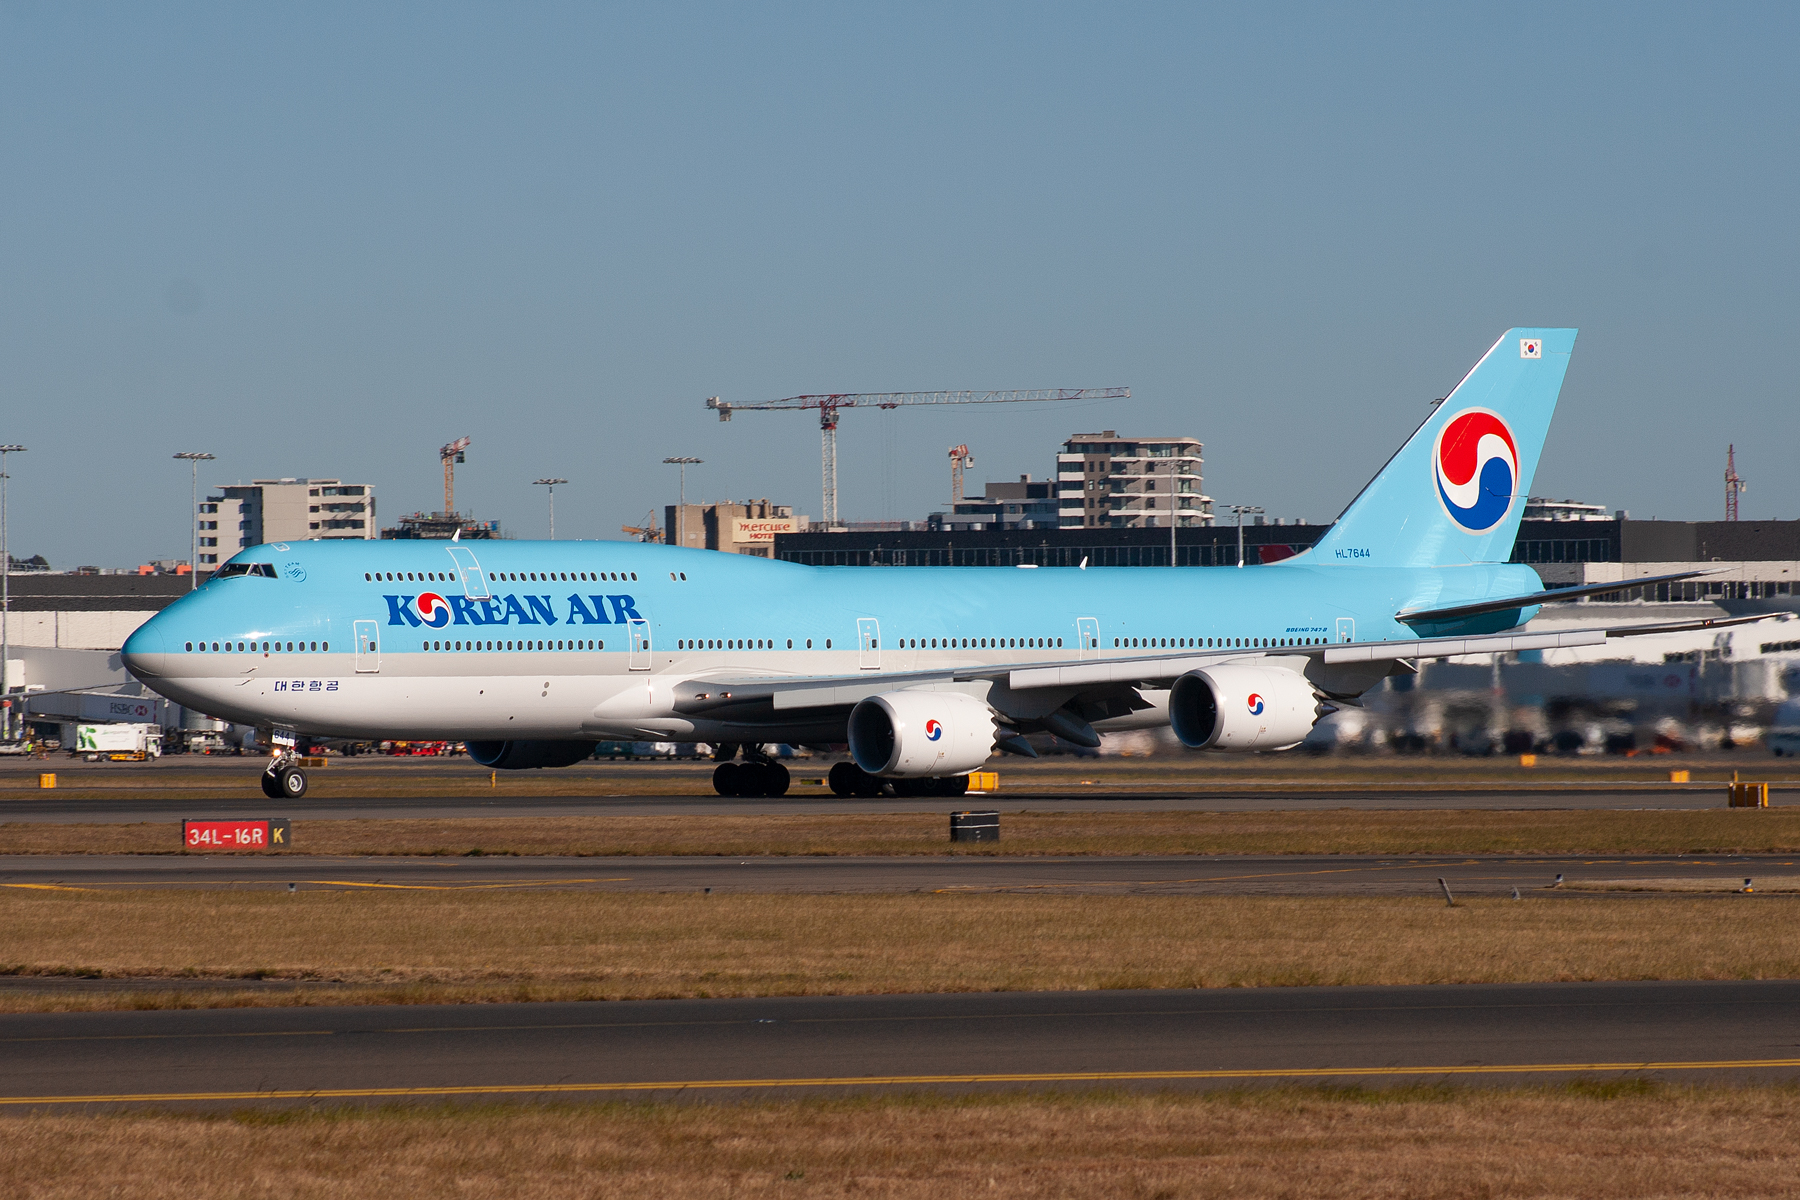 Korean Air Boeing 747-800 HL7644 at Kingsford Smith